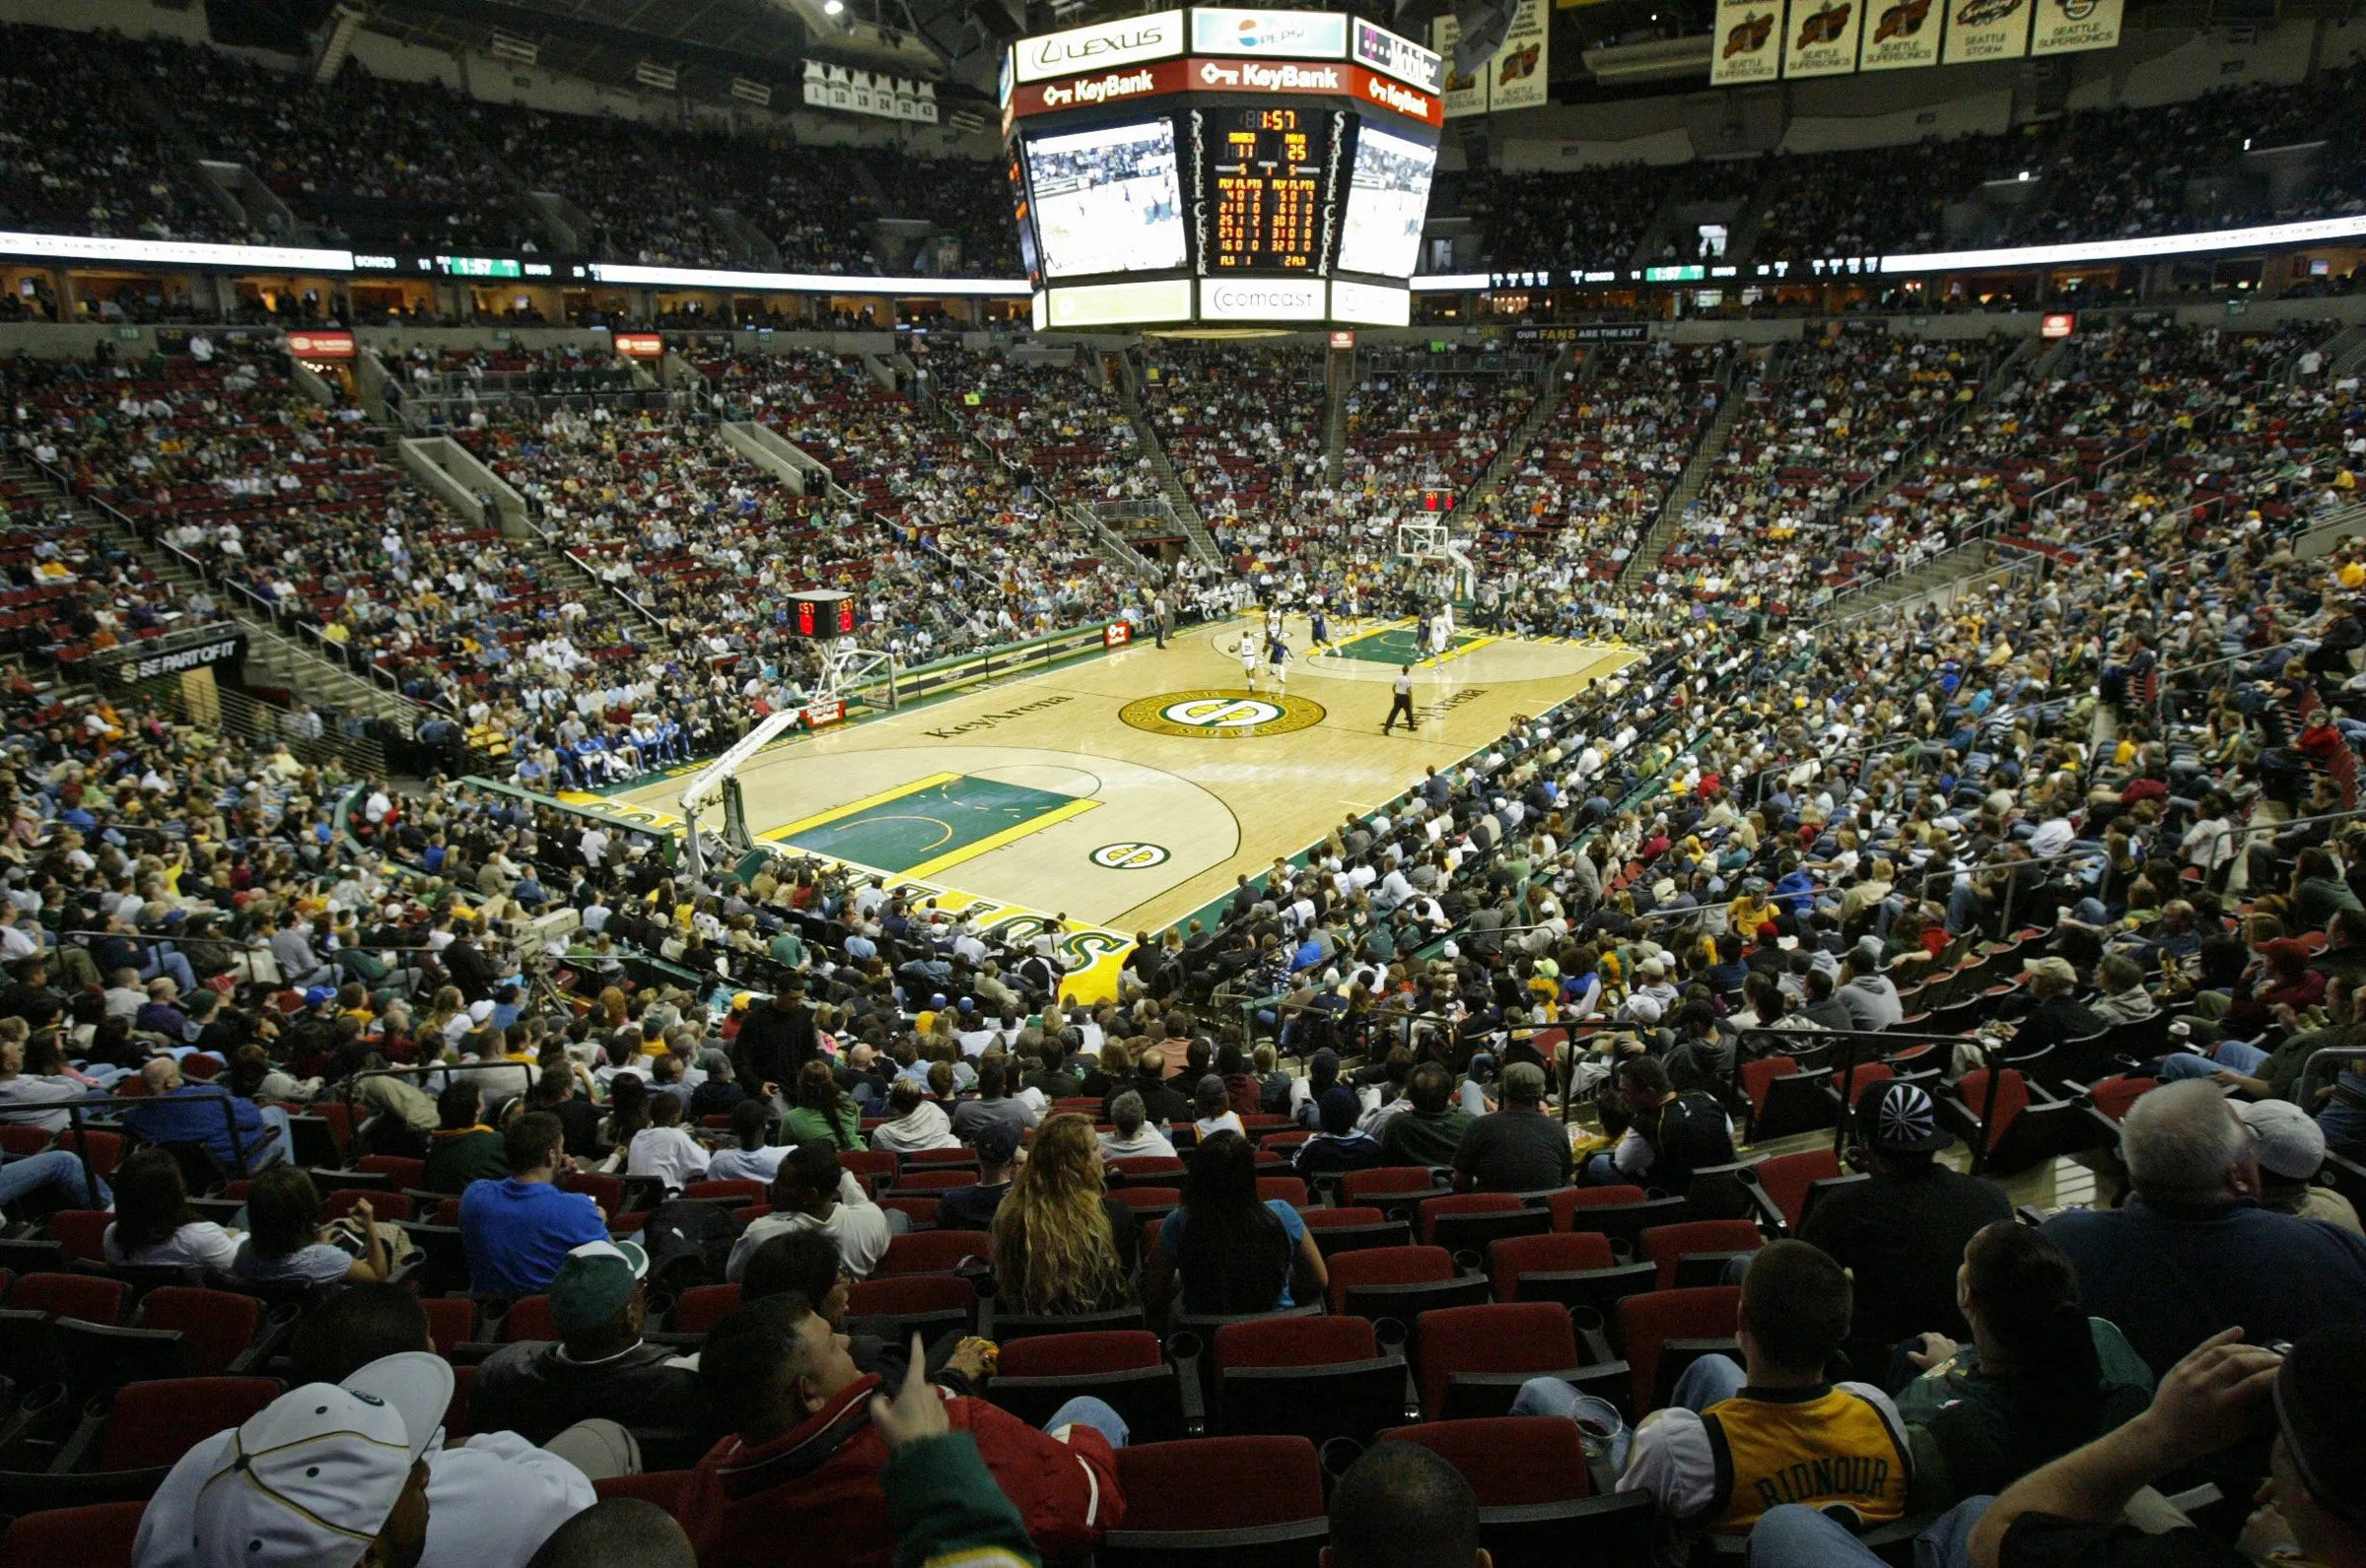 City Brushed Off Feasibility Of Nhl Nba At Keyarena The